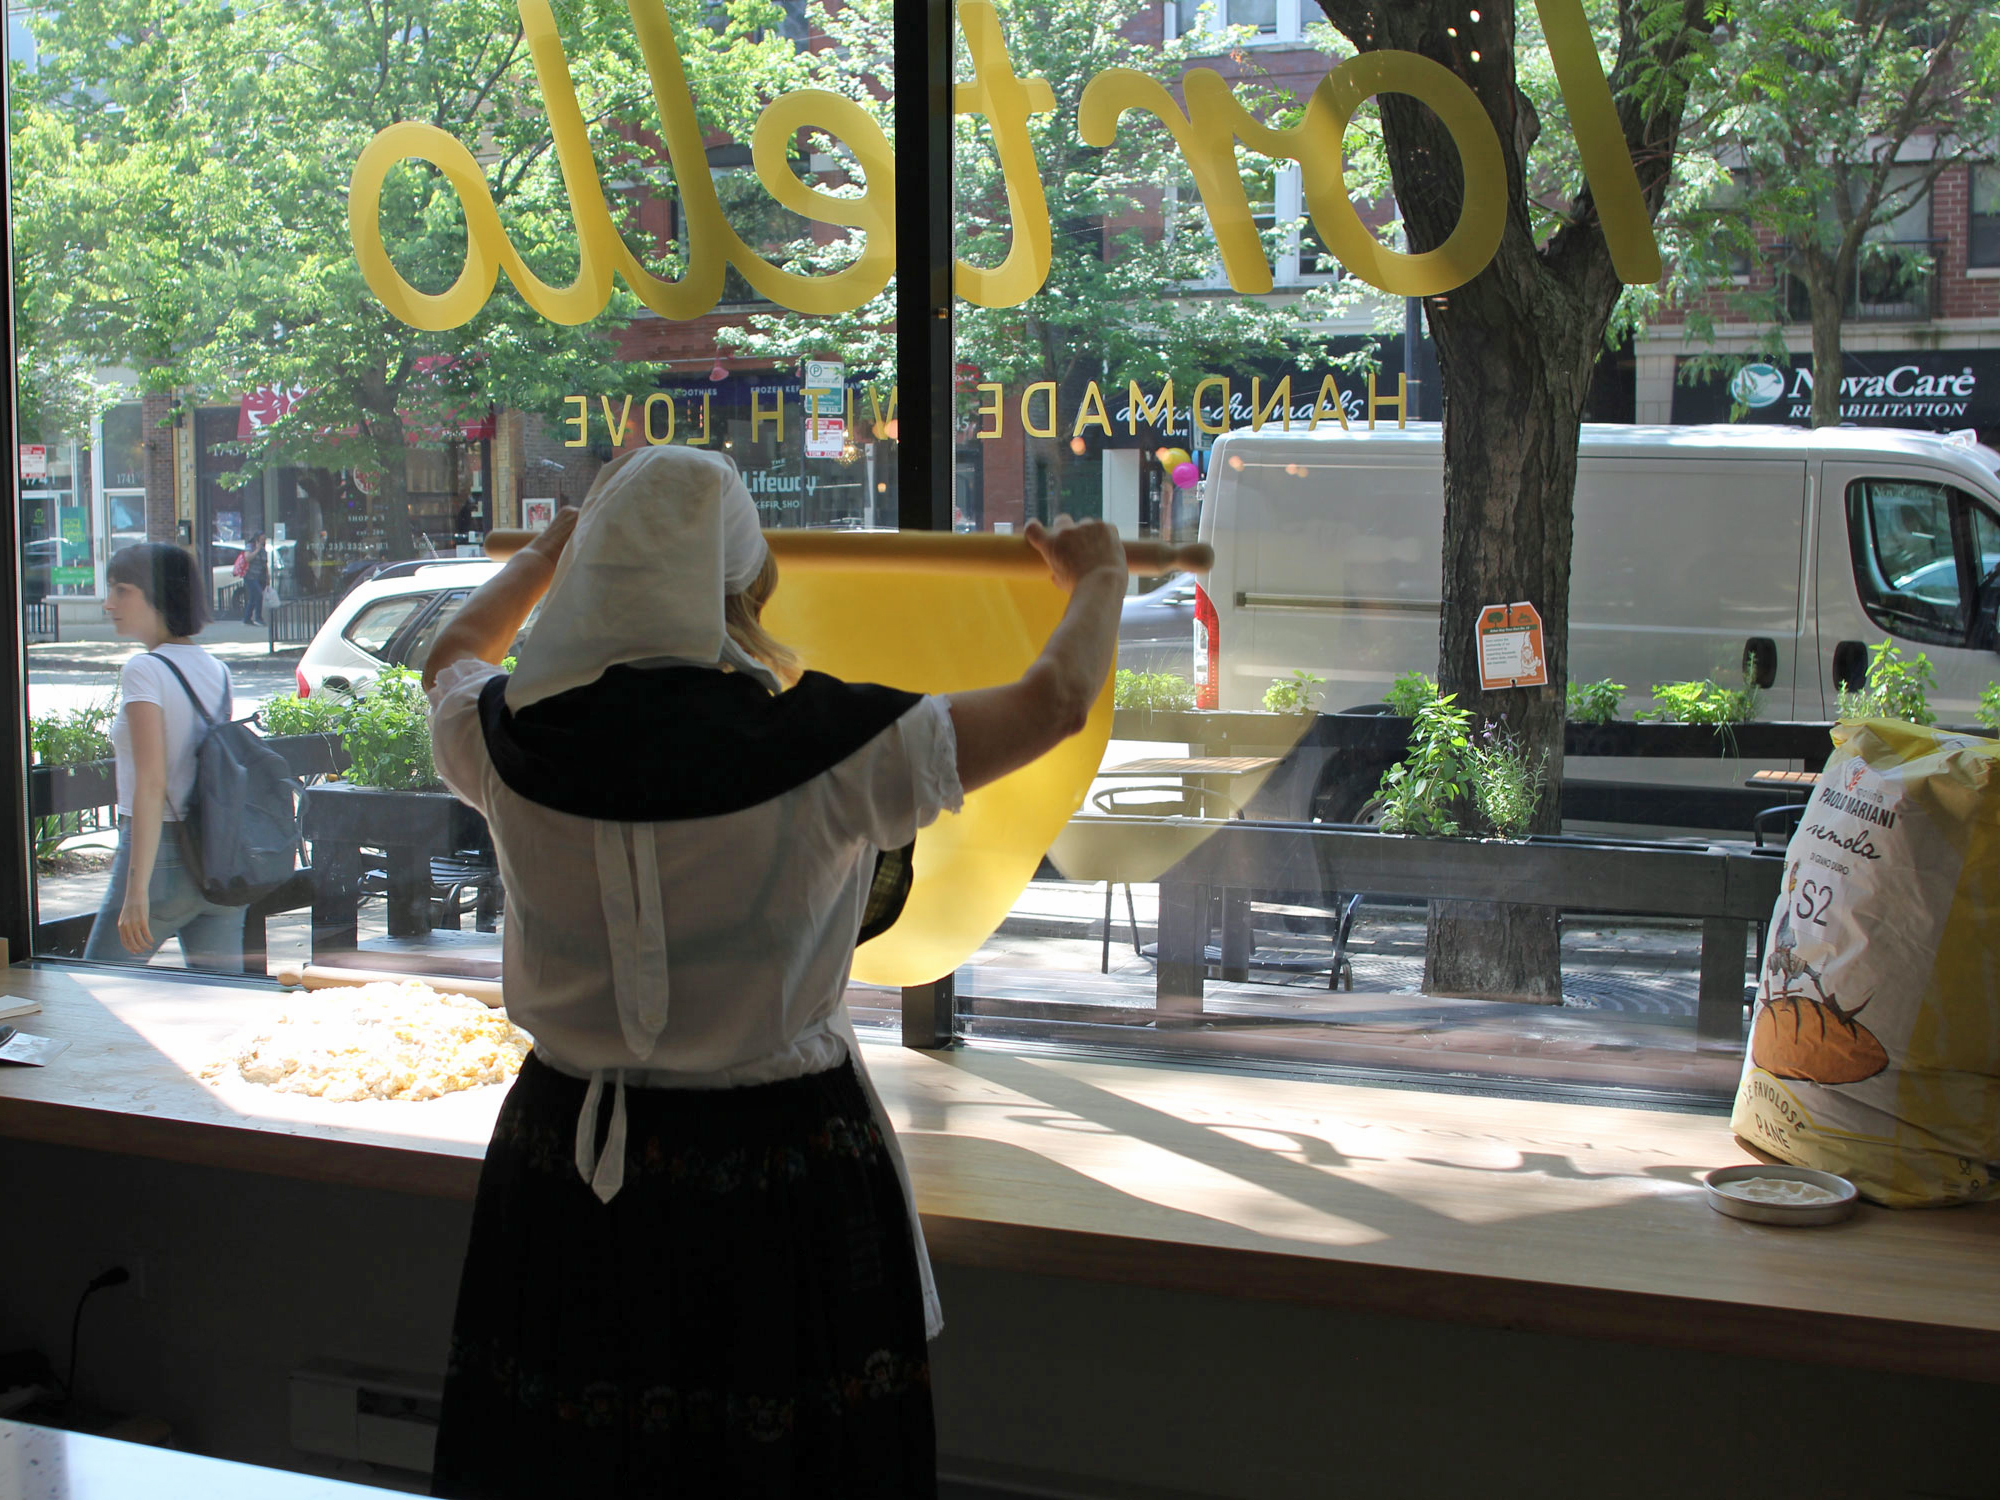 MAKING PASTA IN A WINDOW ON DIVISION STREET